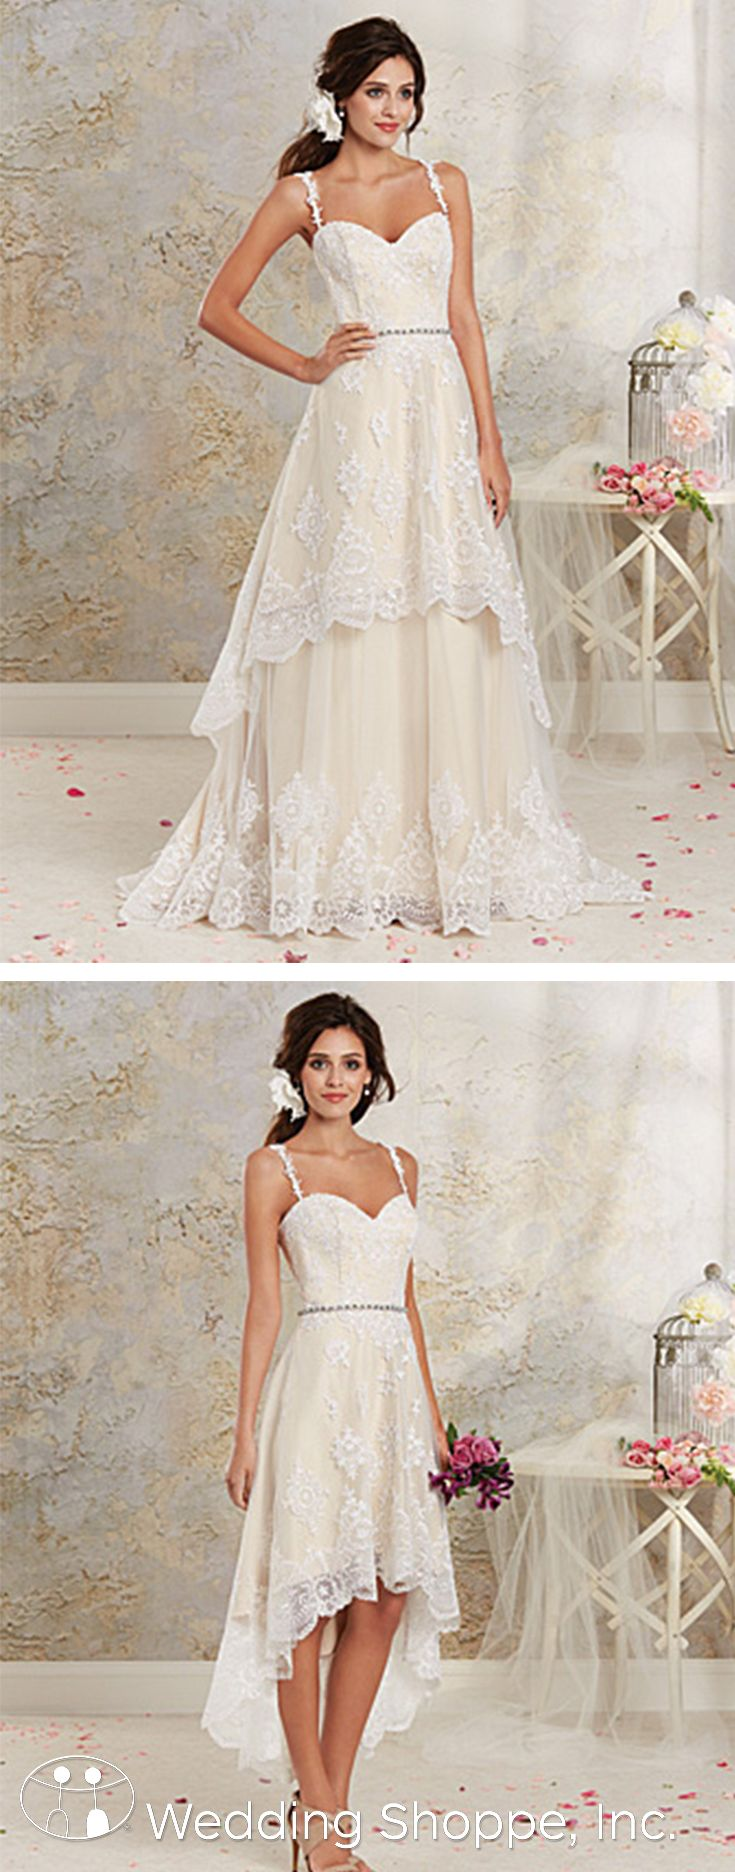 A Delicately Romantic Lace Wedding Dress Featuring Tiered Hi Low Hemline And Detachable